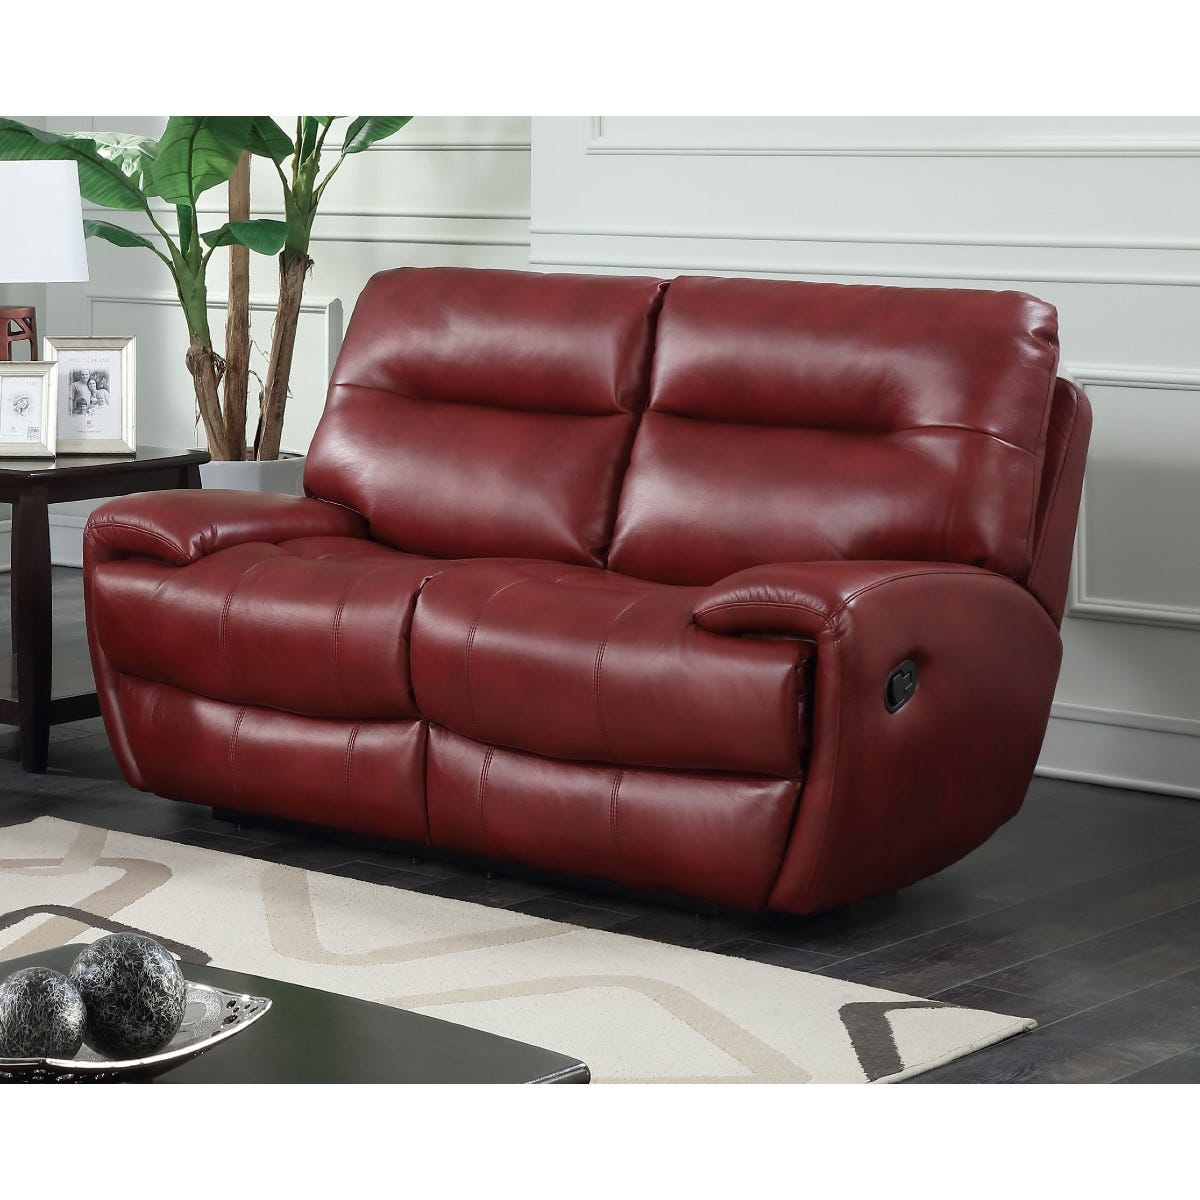 Bampton Recliner 2 Seater Faux Leather Sofa Red